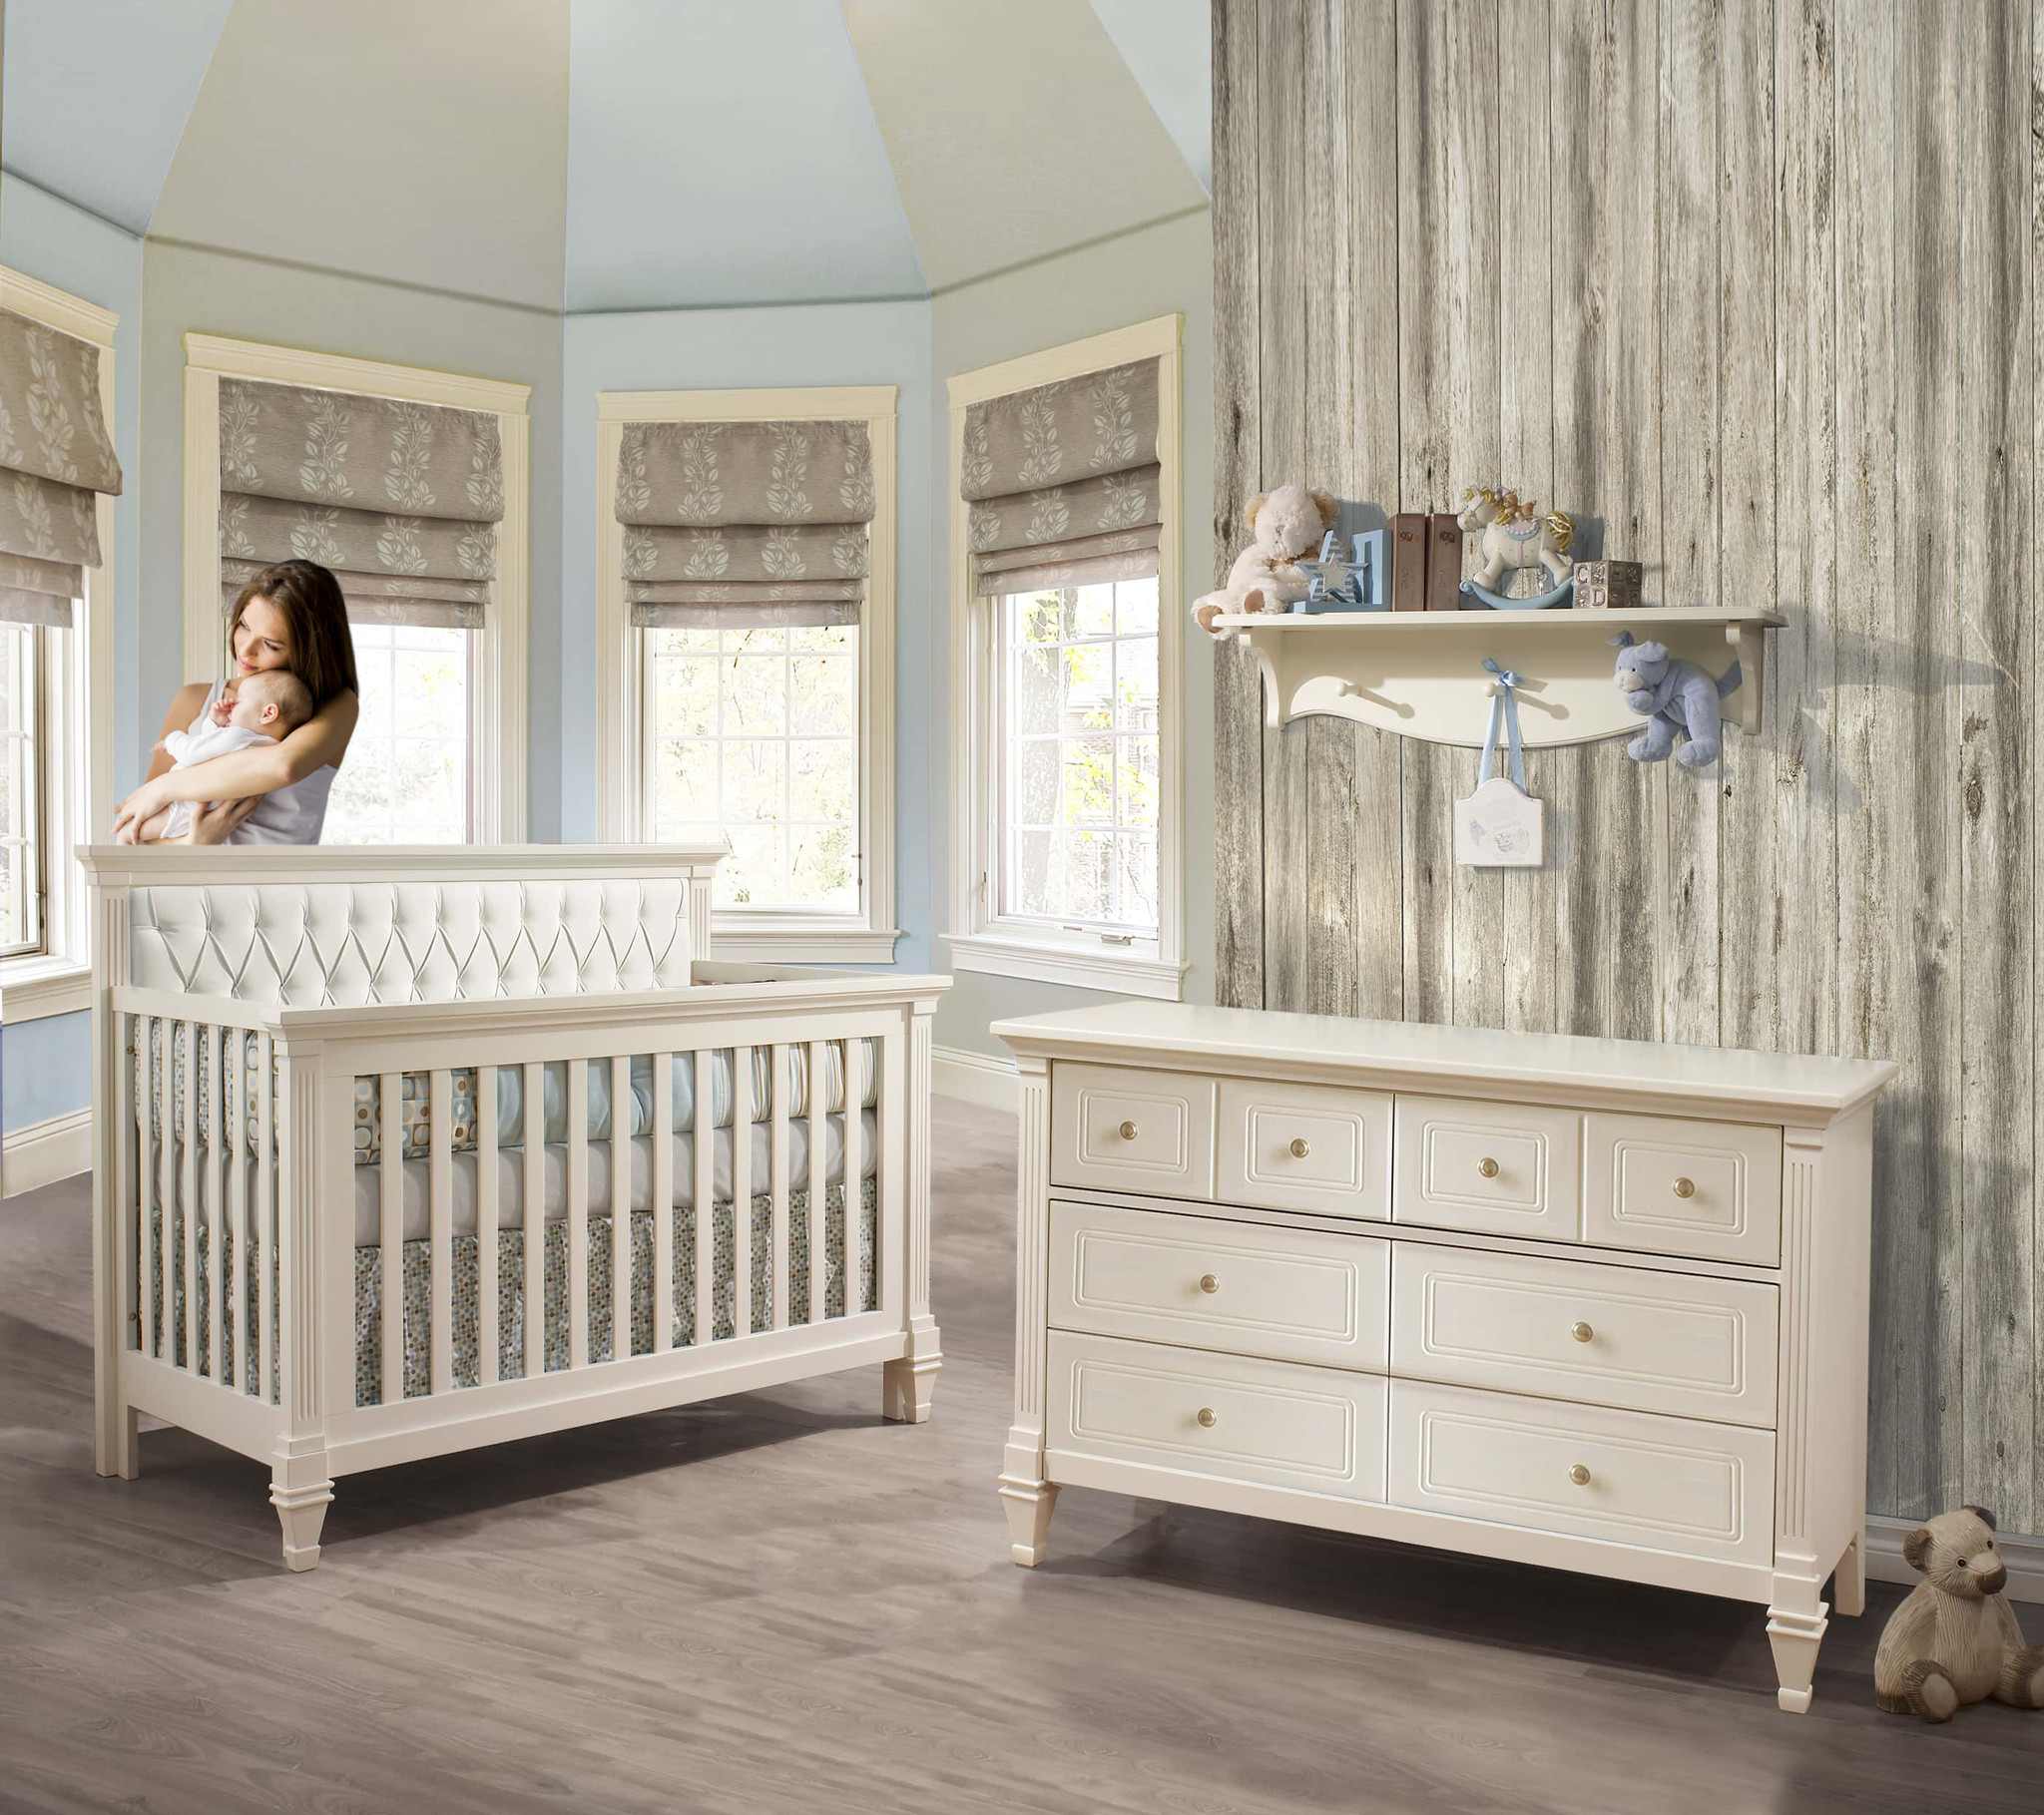 Belmont nursery furniture